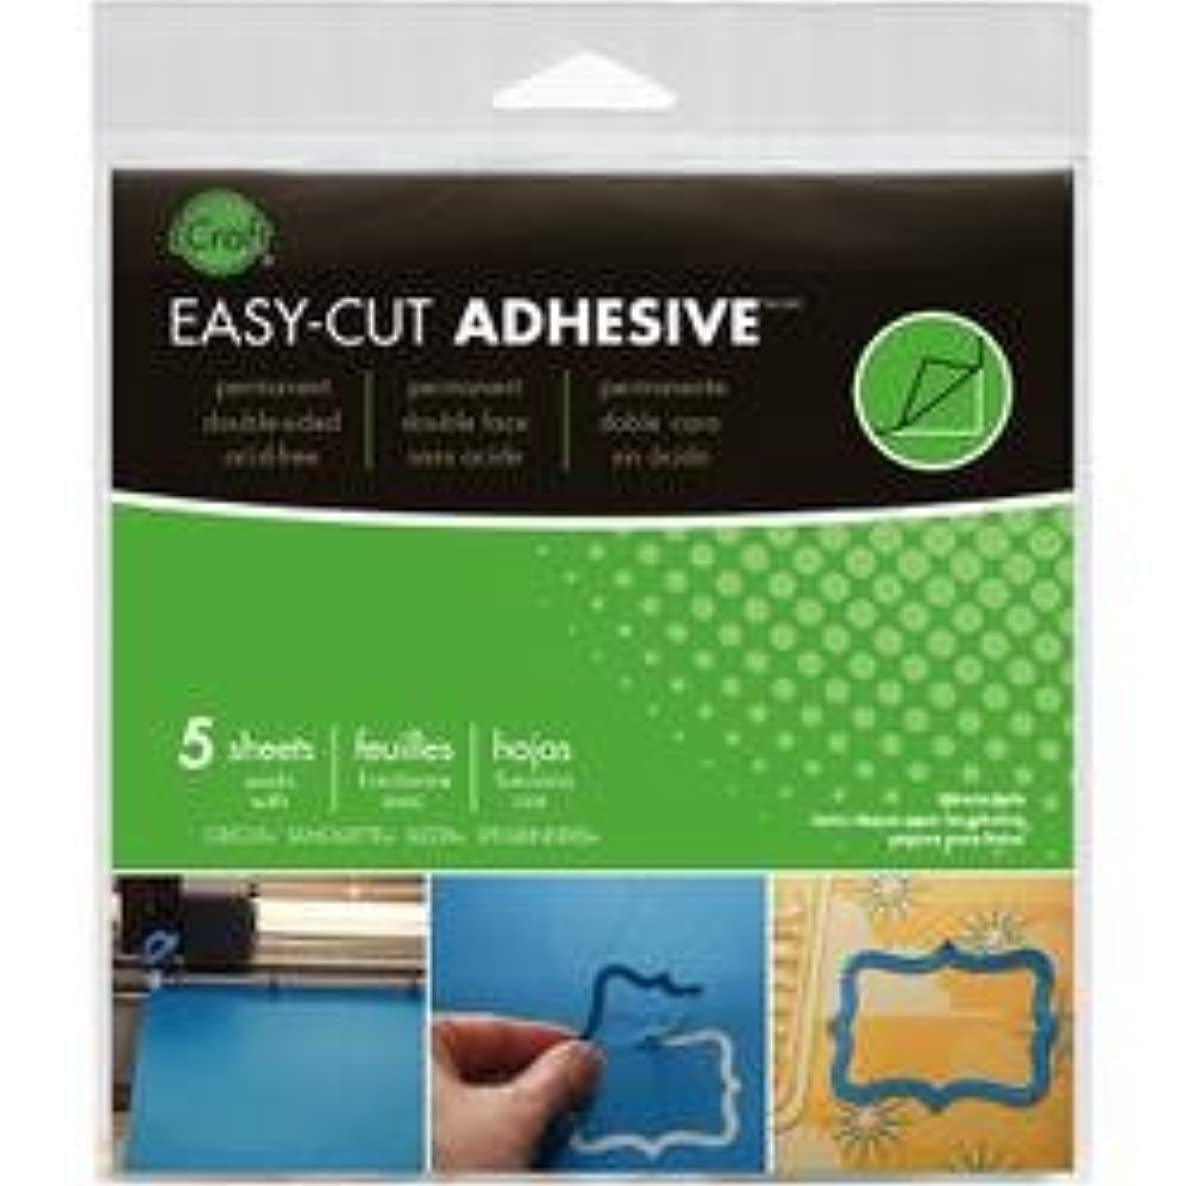 Bulk Buy: Therm O Web Adhesives iCraft Tape Sheets 5/Pkg 5.75in. x 5.75in. (4-Pack)